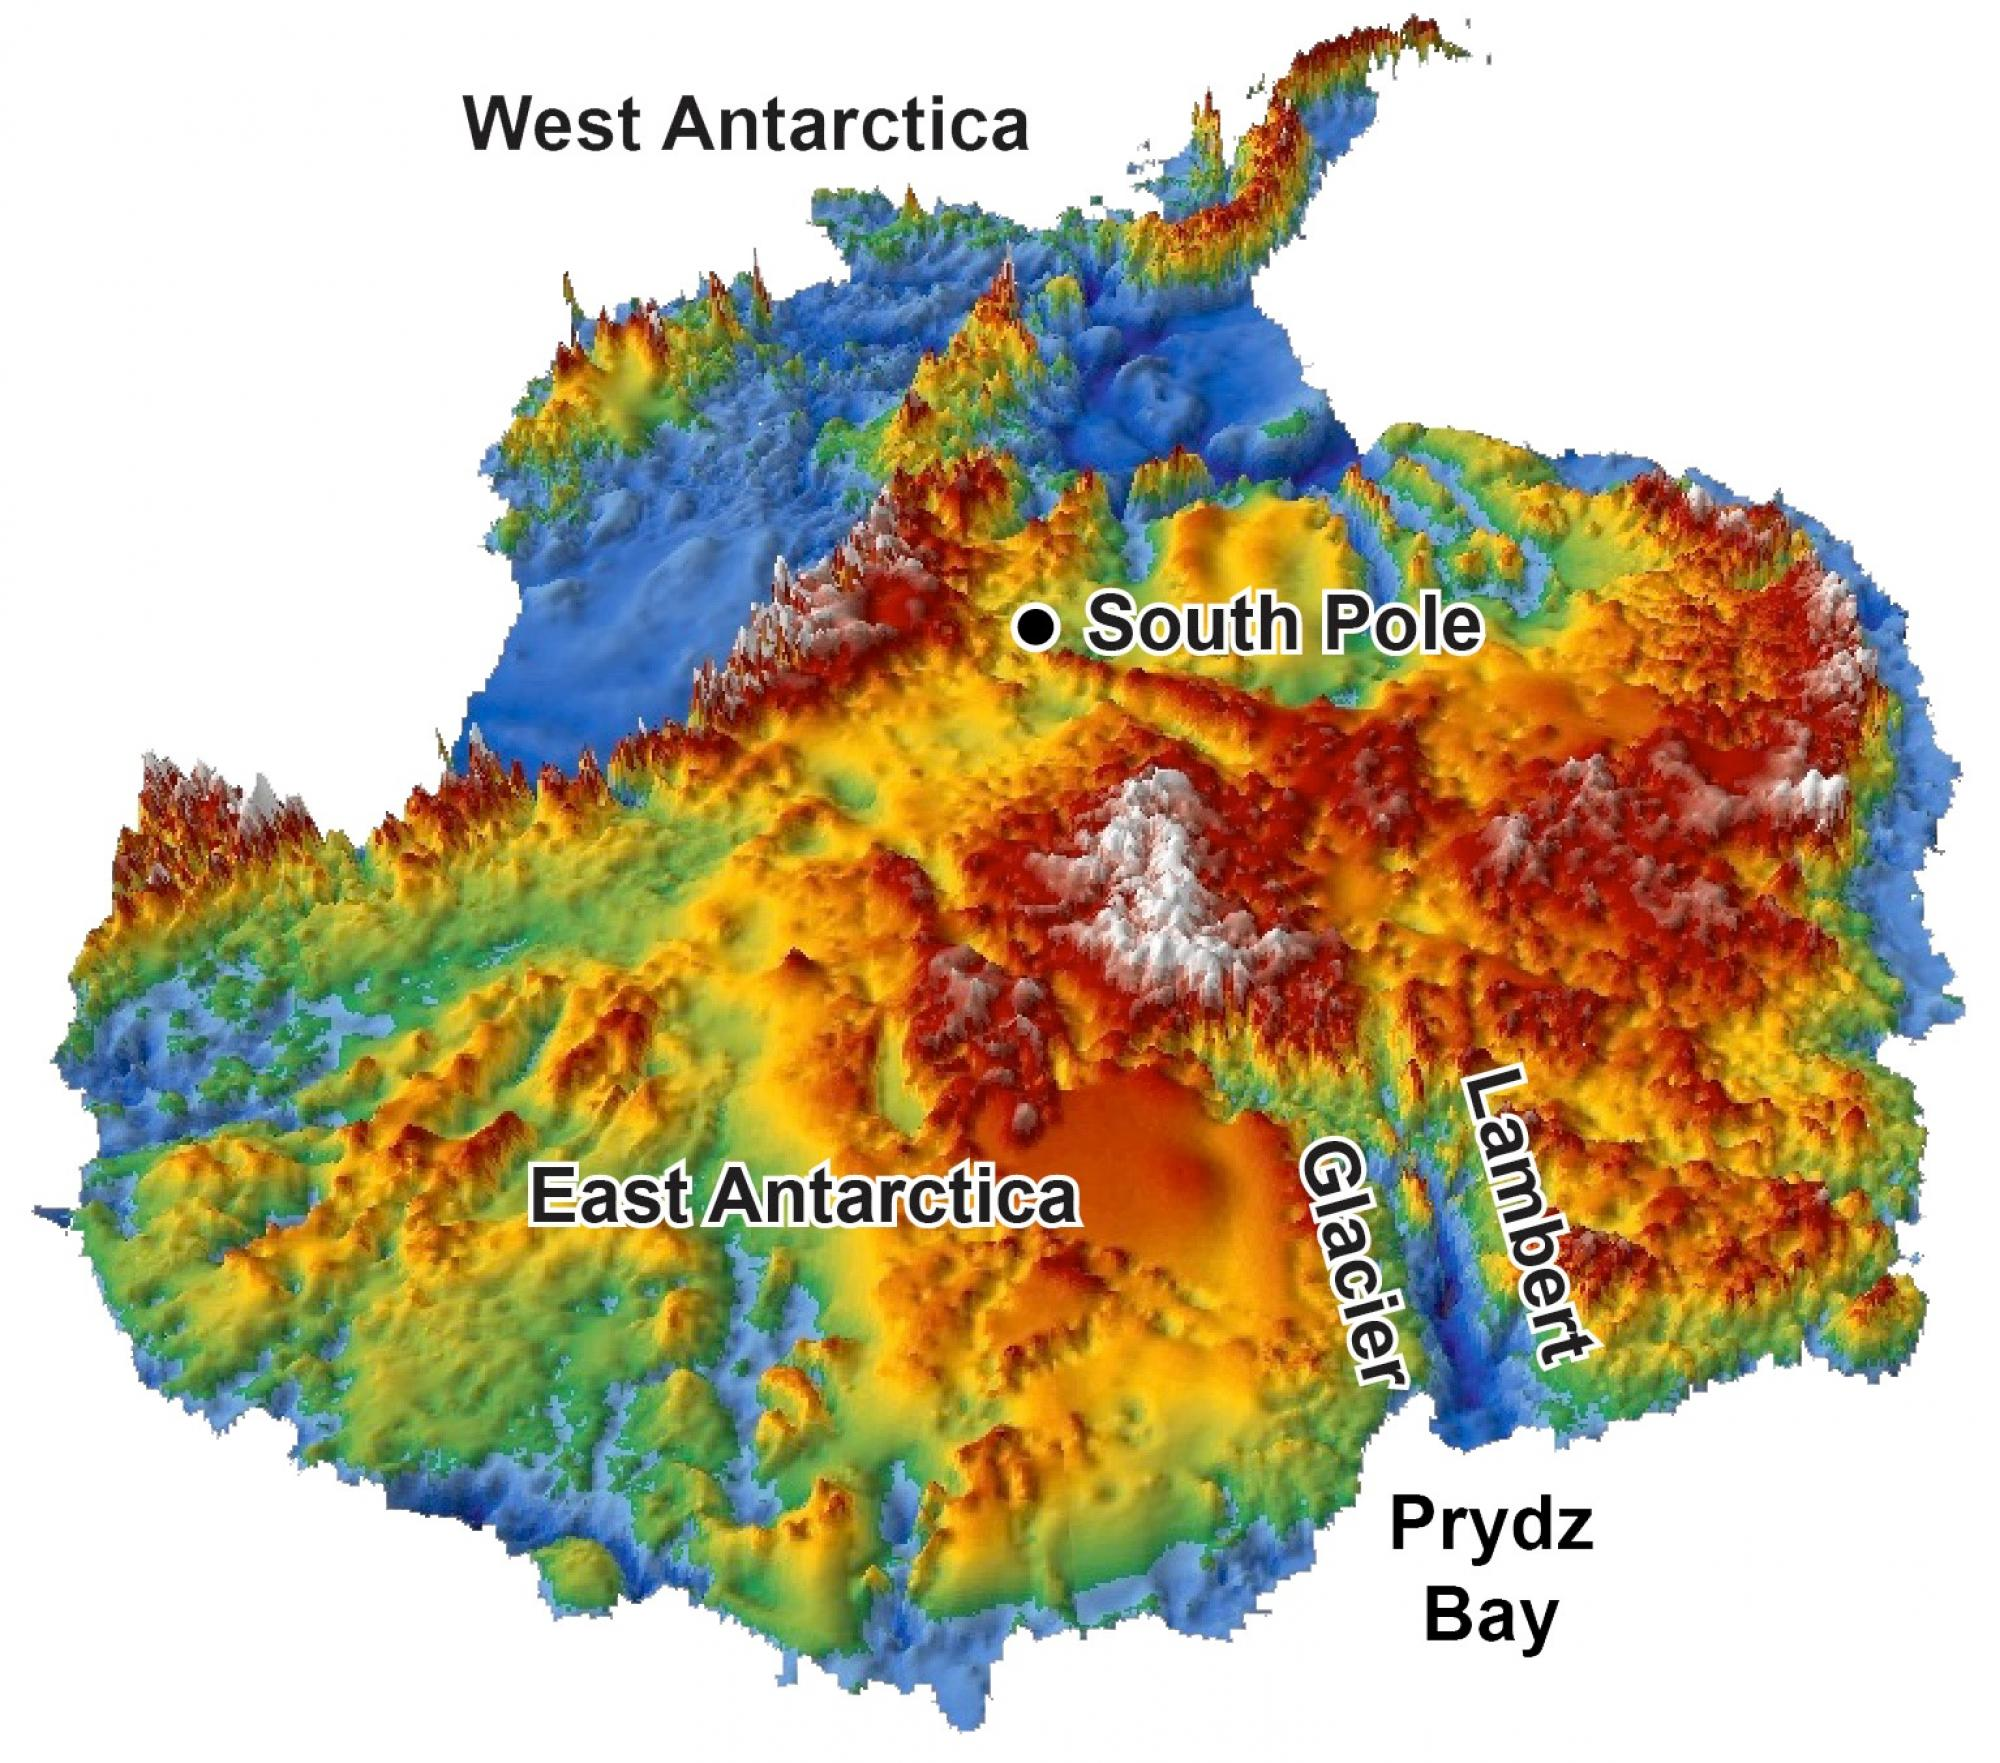 This 3-D reconstruction of the topography hidden under Antarctica's two-mile-thick coating of ice was made using data from radar surveys. Glaciers started carving Antarctica into the current mountain-and-fjord landscape 34 million years ago, according to